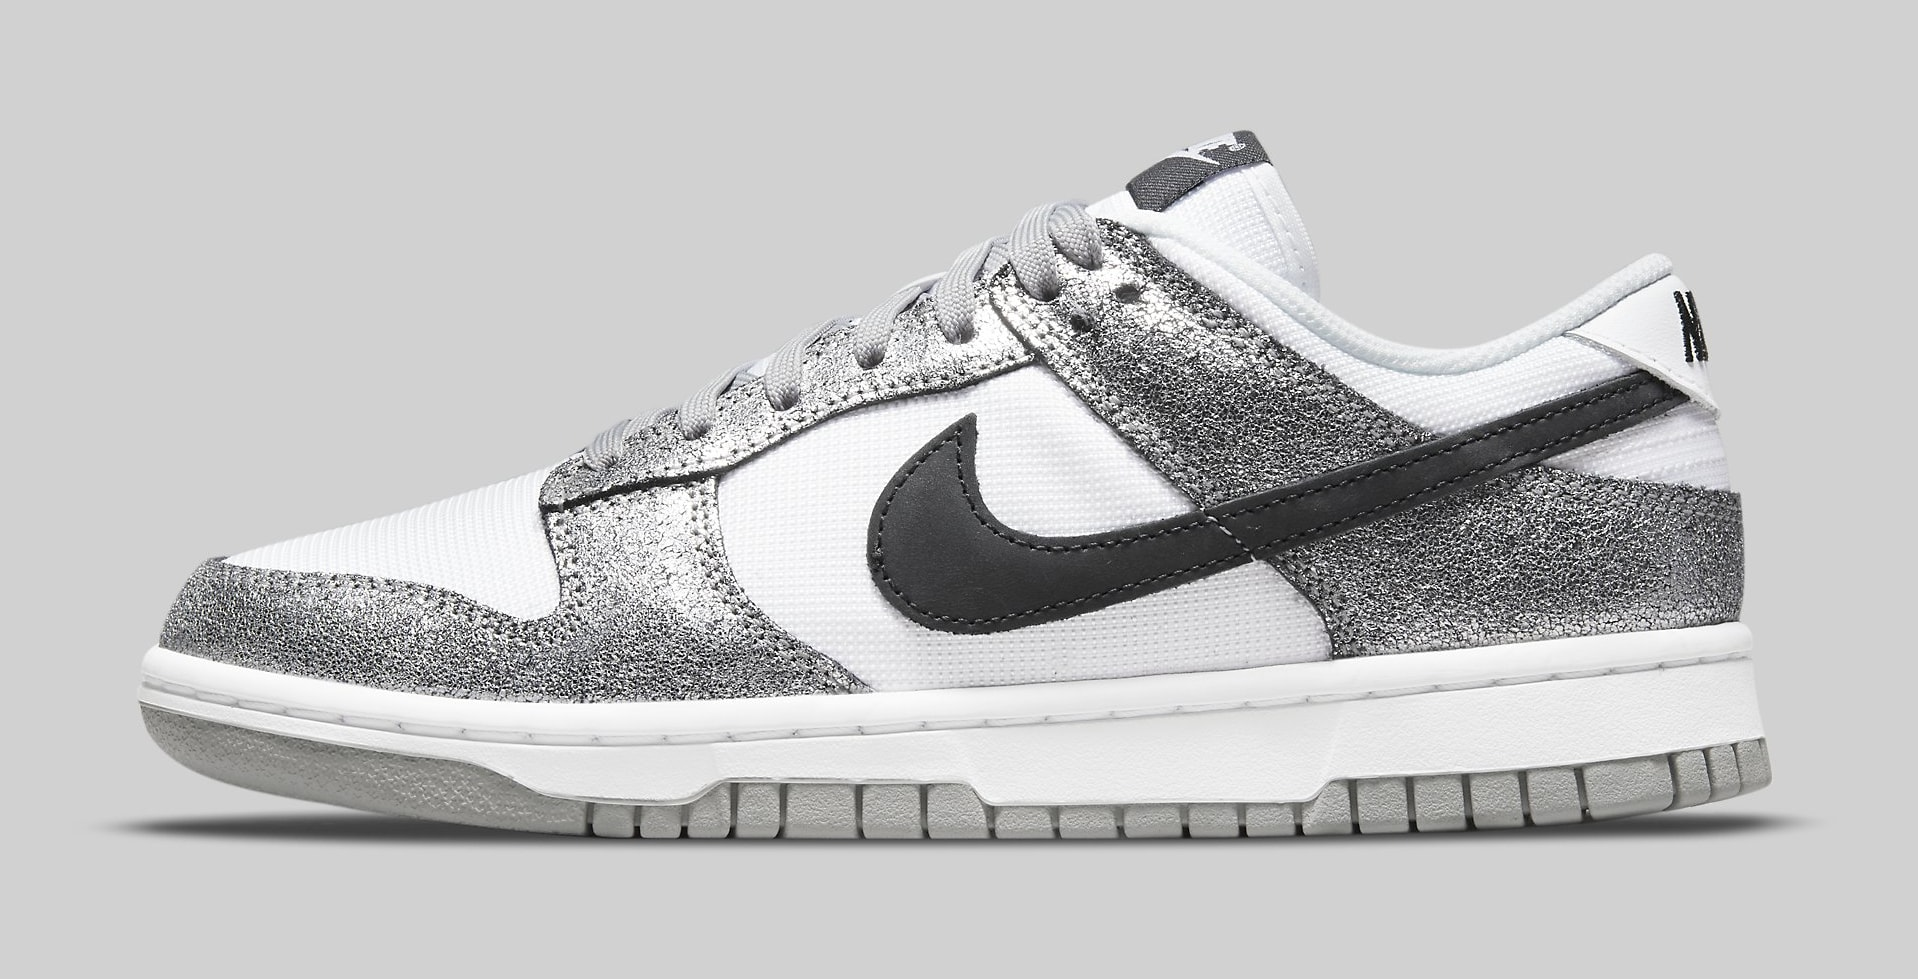 Nike Dunk Low 'Shimmer' DO5882-001 Lateral